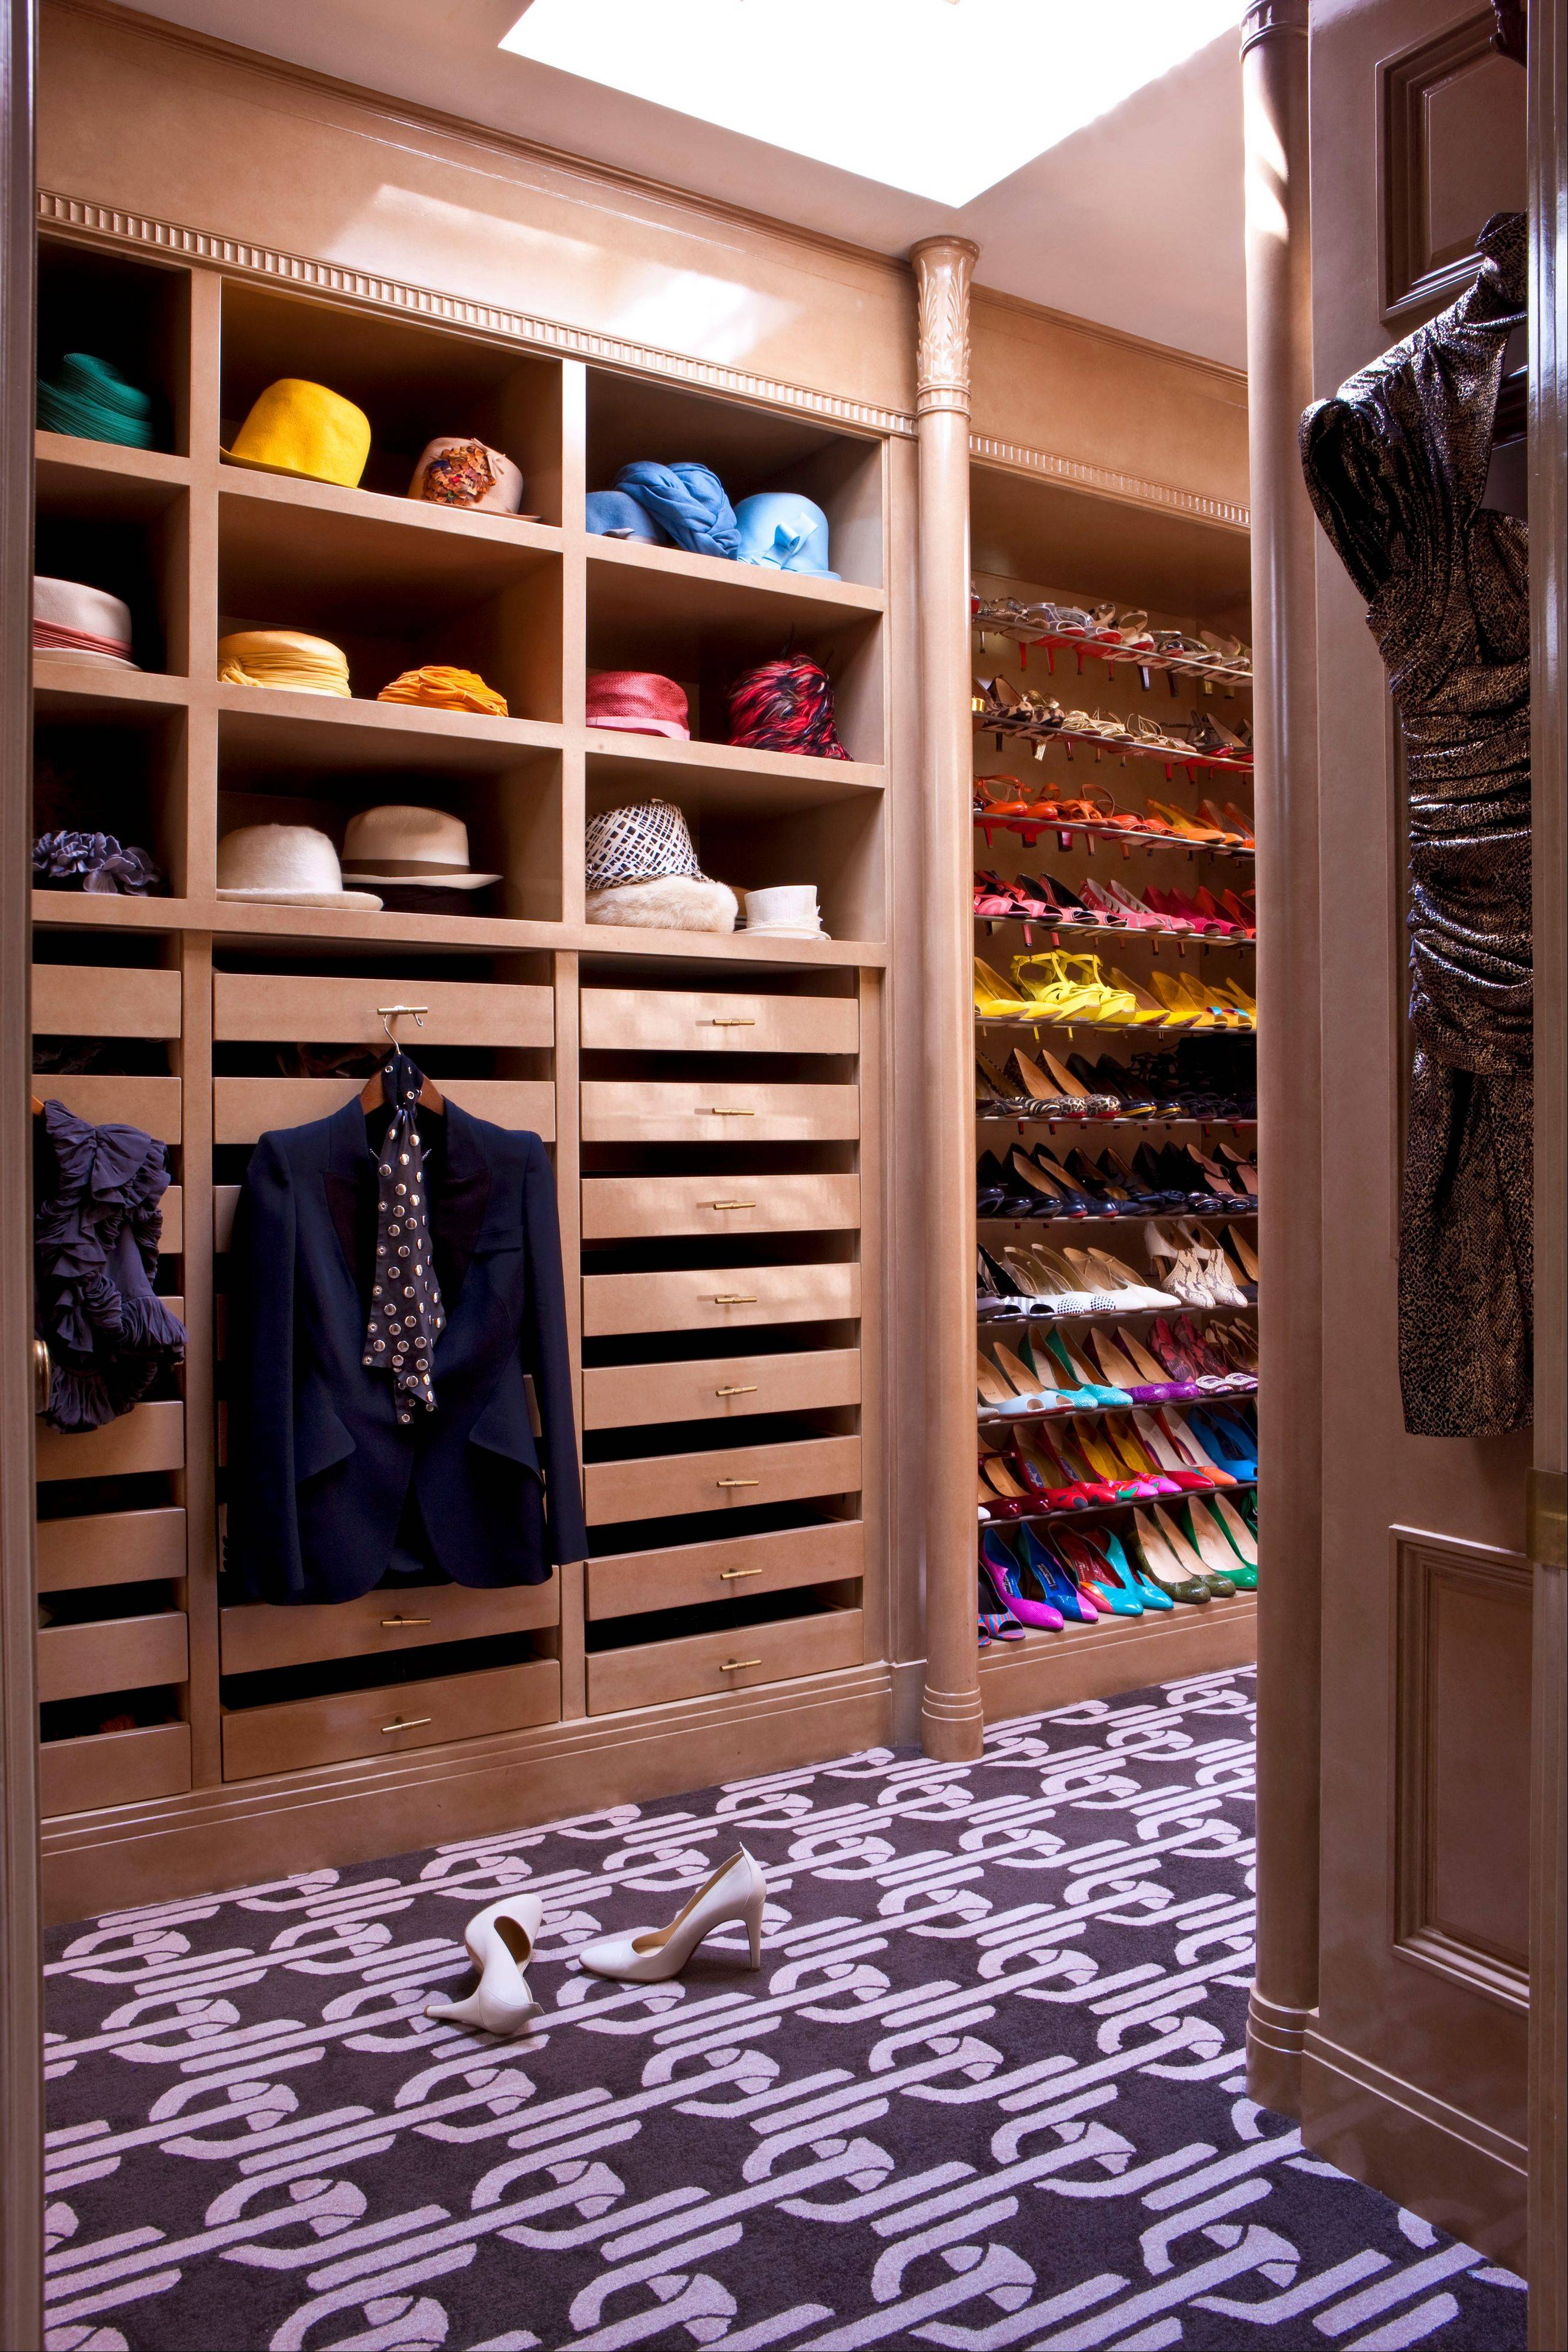 Designer Kelly Wearstler says the closet is the foundation regarding color, style and textures.